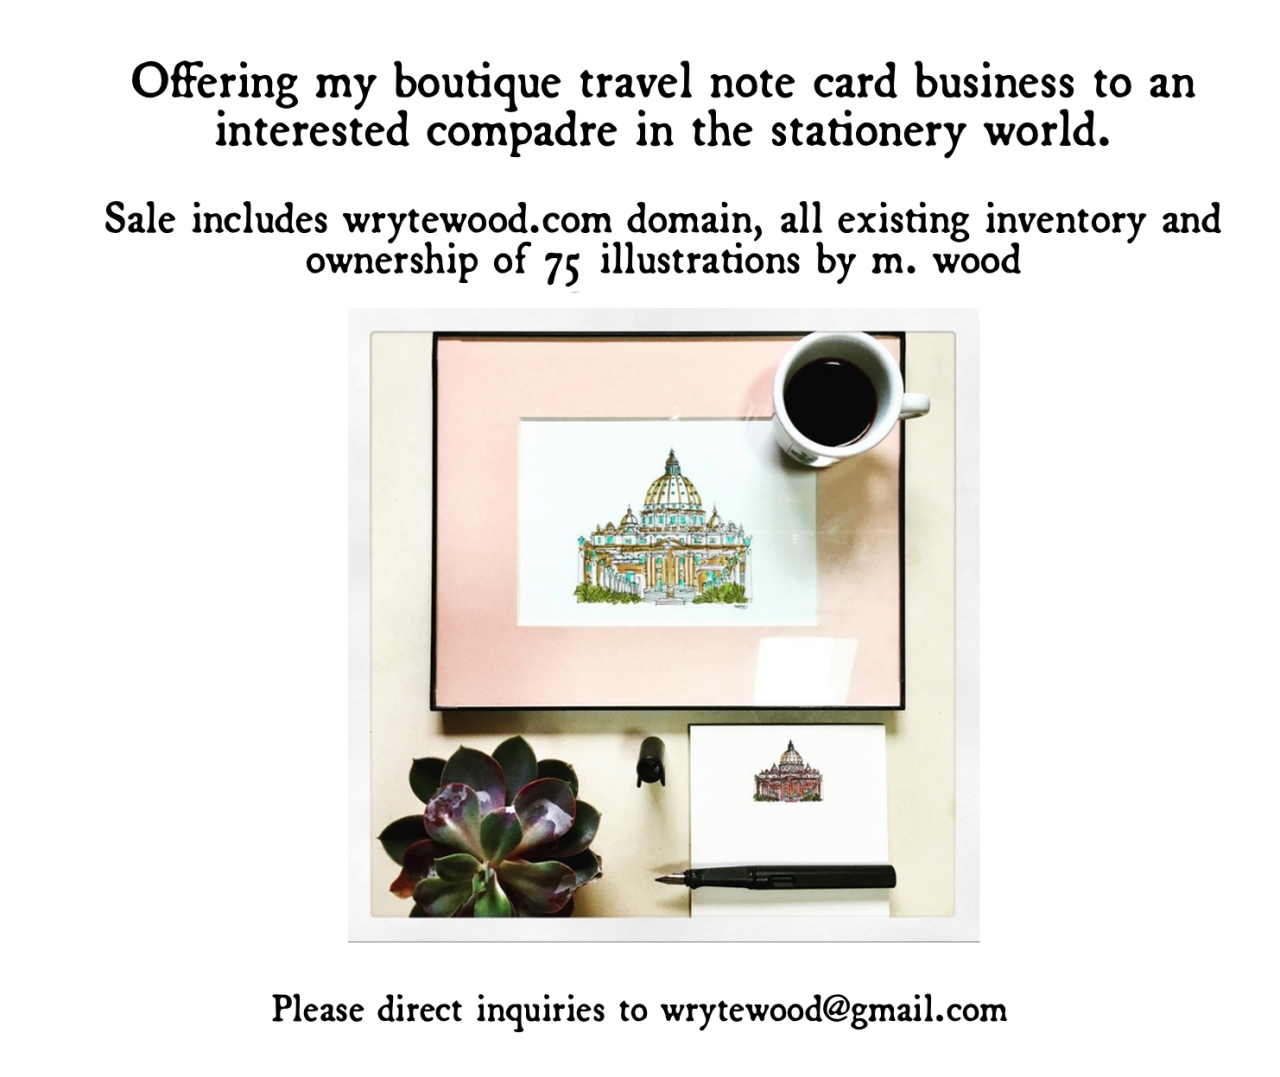 Offering my boutique travel note card business for sale.